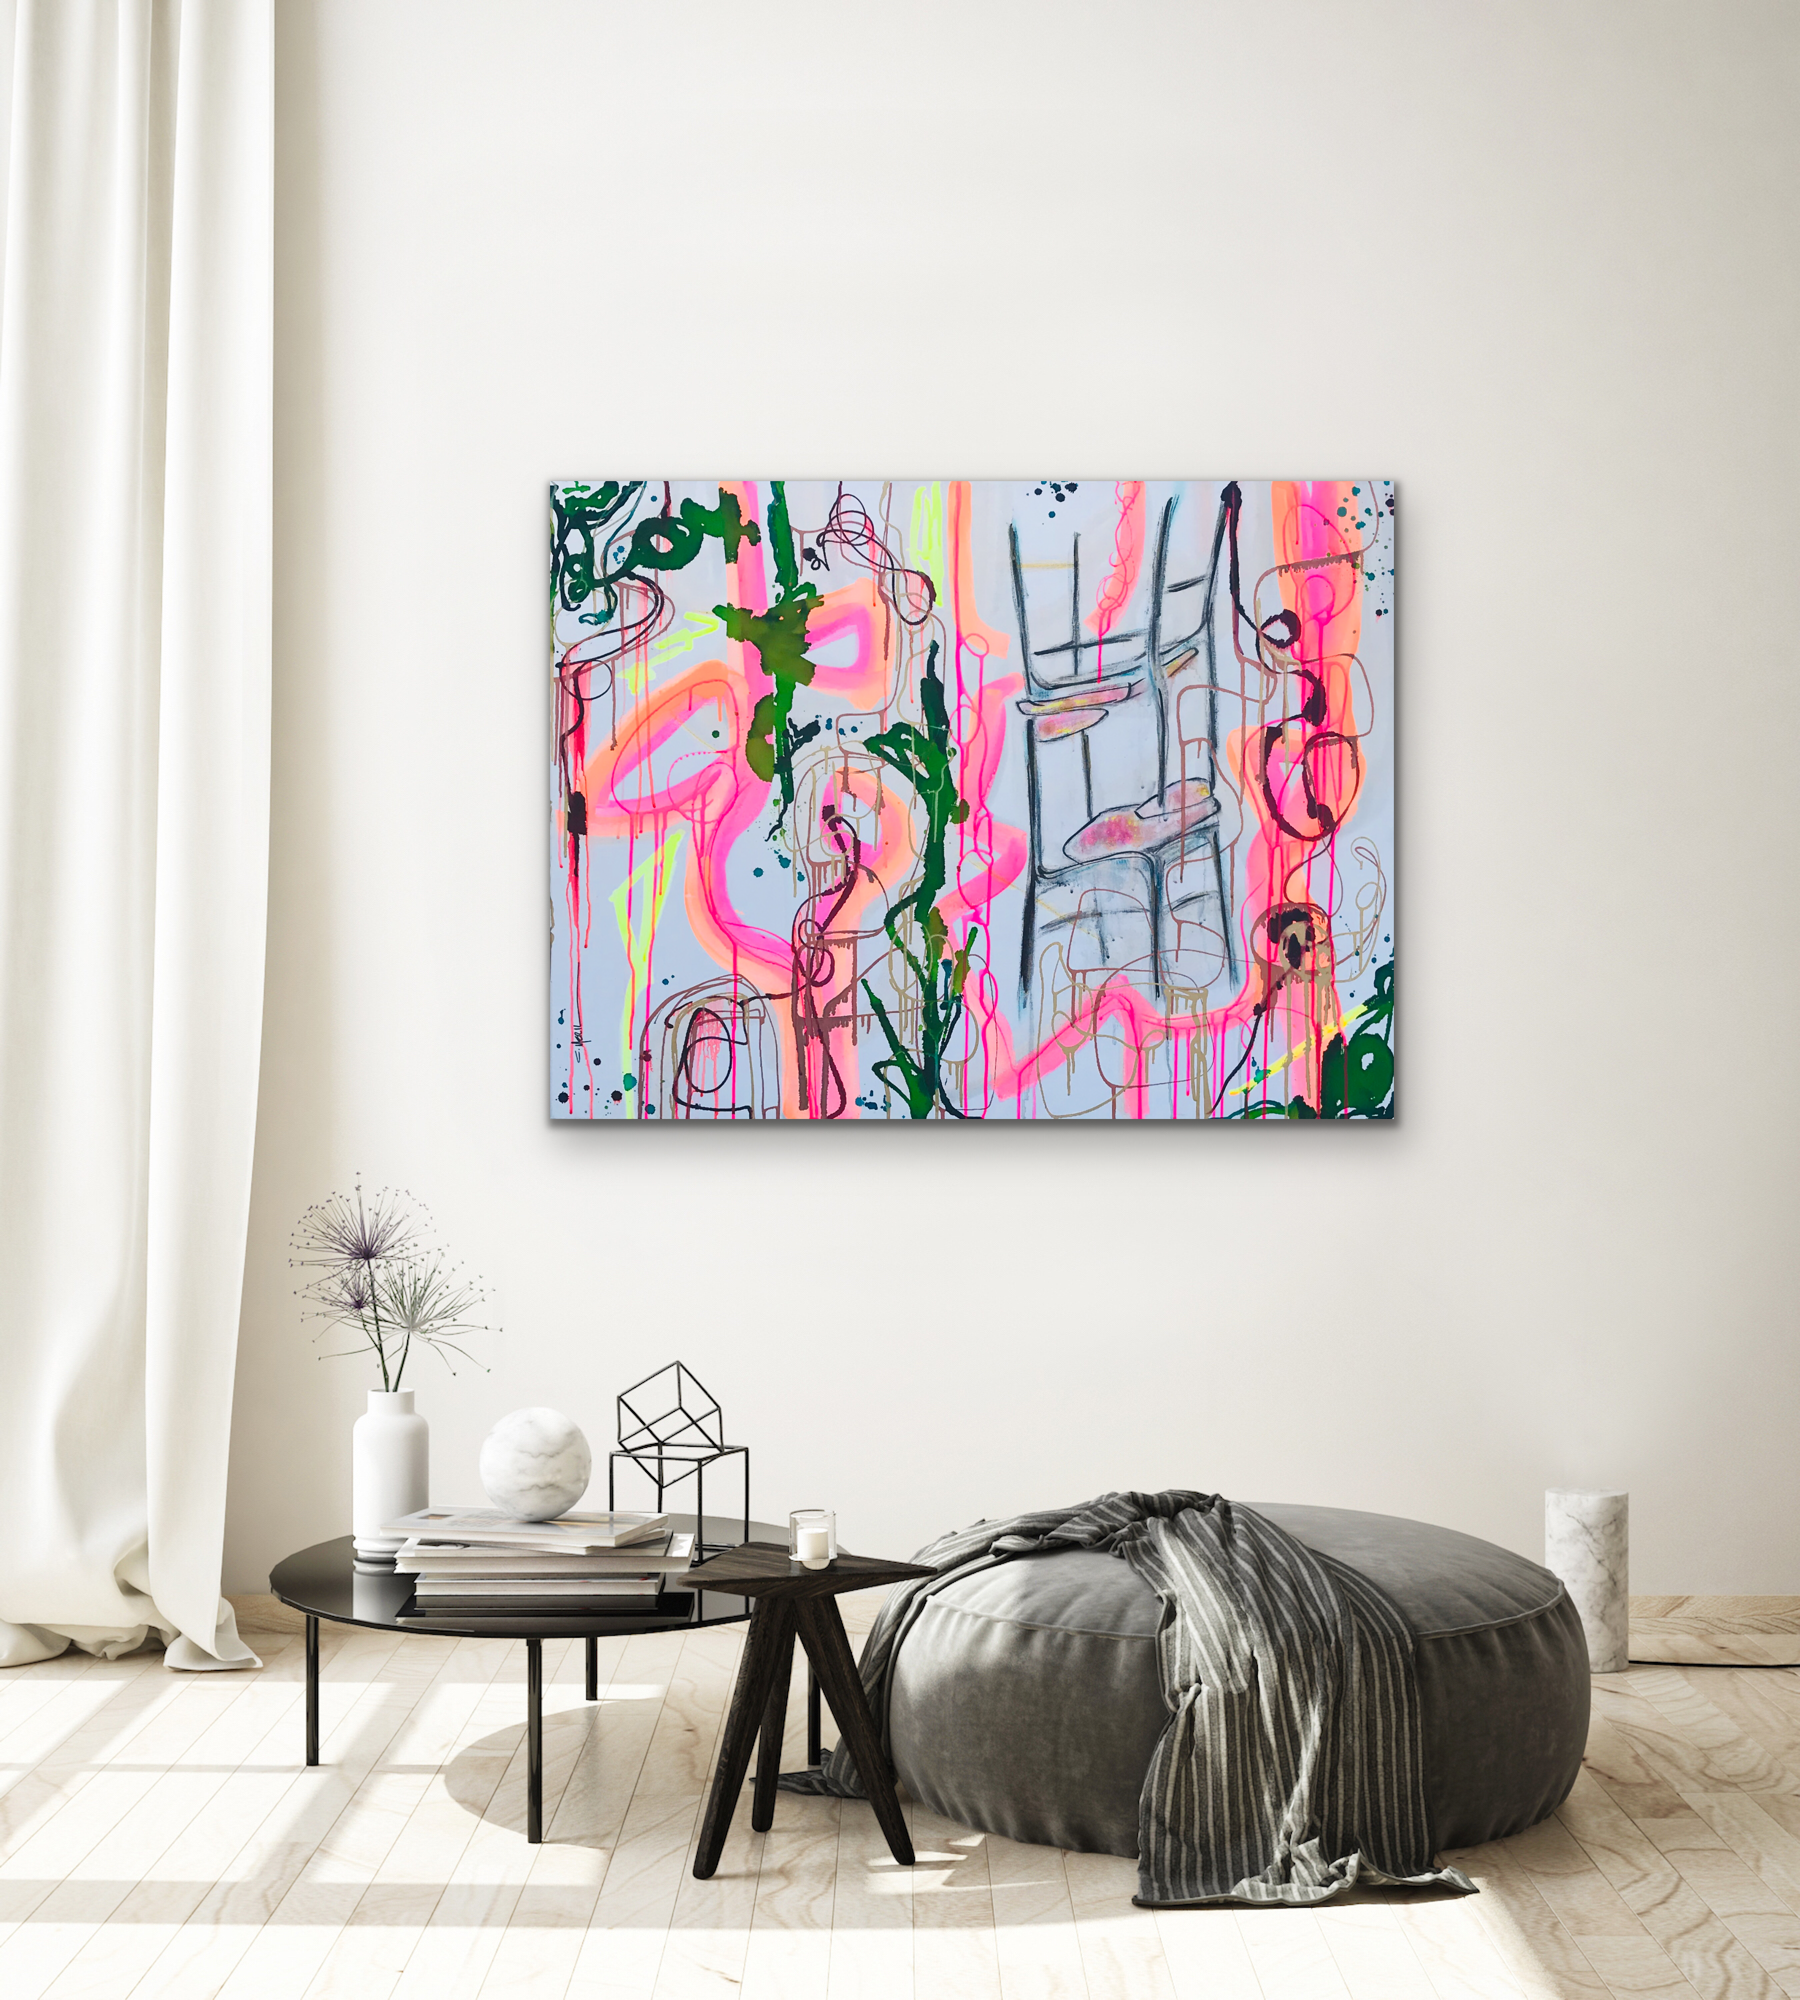 CHRISTI MERIL ART-LEAN ON ME-DALLAS ABSTRACT EXPRESSIONIST-DALLAS ABSTRACT ARTIST-DALLAS CHAIR ART-3